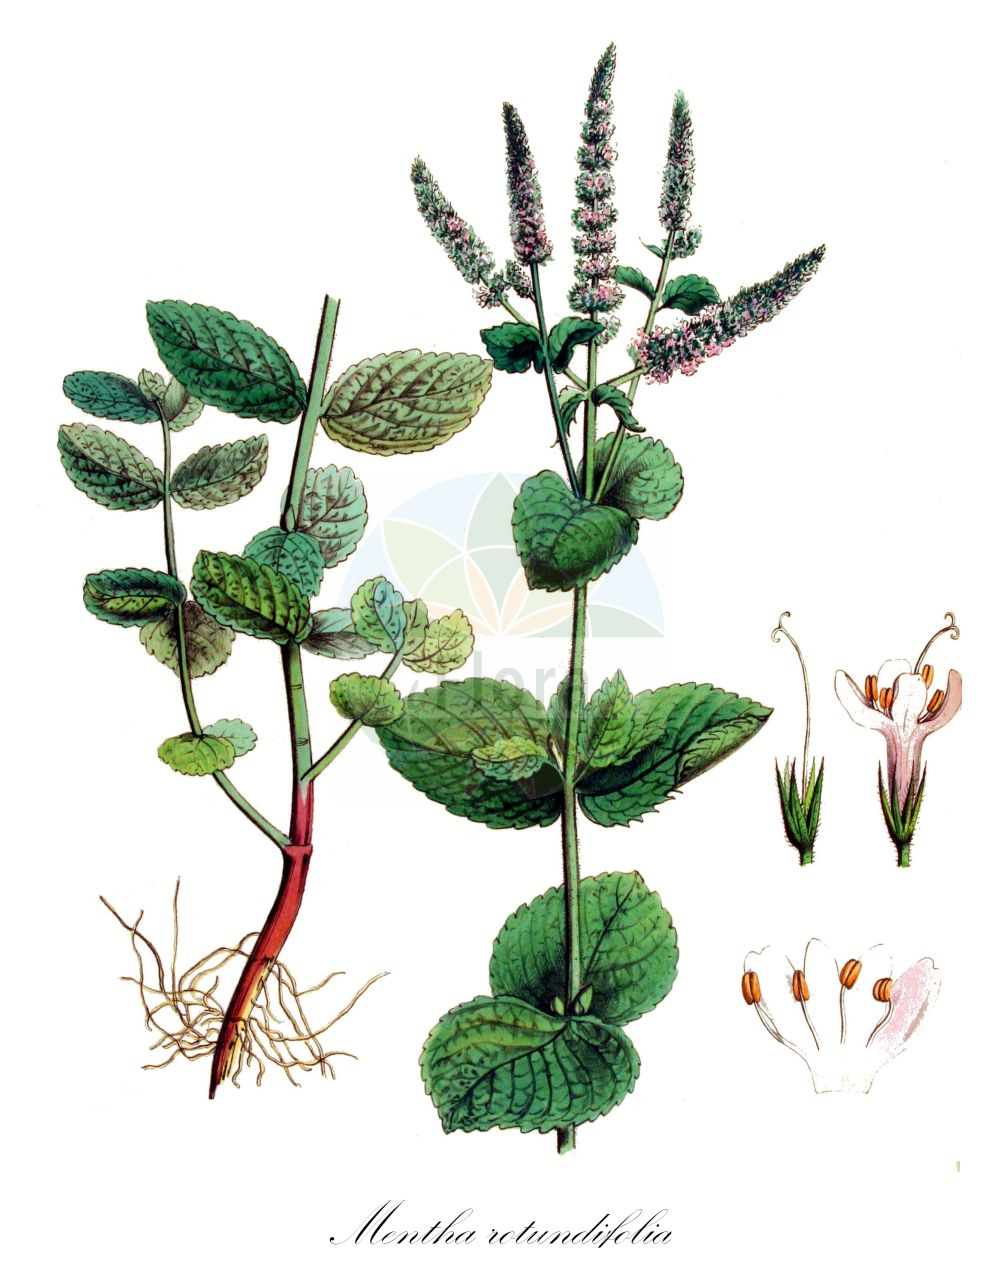 Historische Abbildung von Mentha rotundifolia (Rossminze). Das Bild zeigt Blatt, Bluete, Frucht und Same. ---- Historical Drawing of Mentha rotundifolia (Rossminze).The image is showing leaf, flower, fruit and seed.(Mentha rotundifolia,Rossminze,Mentha,Minze,Mint,Lamiaceae,Lippenbluetengewaechse;Lippenbluetler,Nettle family,Blatt,Bluete,Frucht,Same,leaf,flower,fruit,seed,Kops (1800-1934))